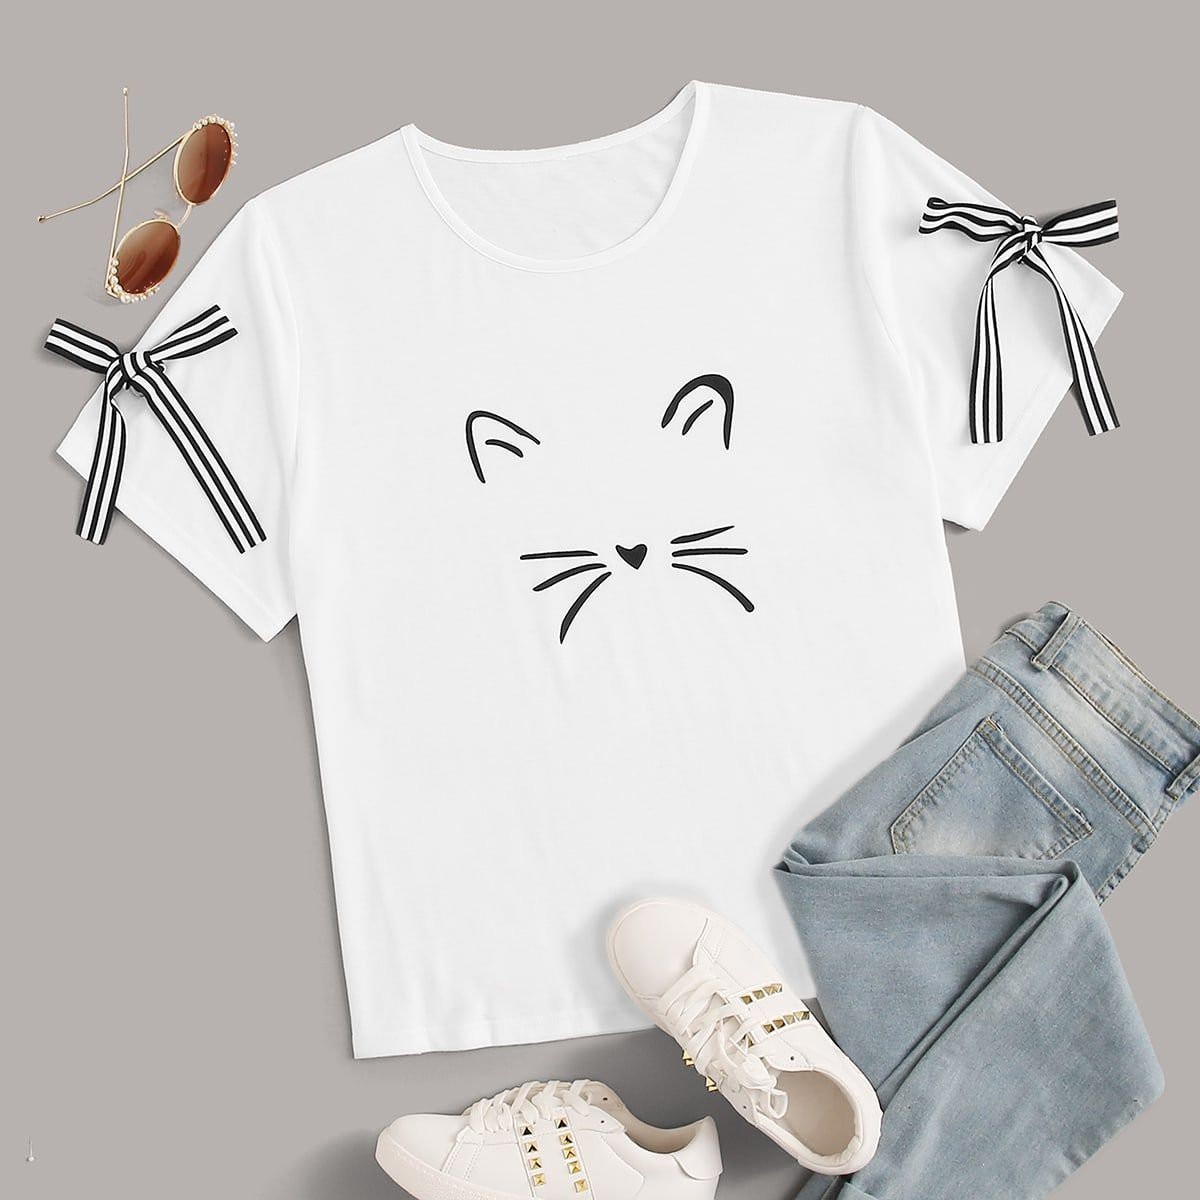 Plus Cartoon Graphic Bow Detail Tee White Casual Short Sleeve Polyester Cartoon Slight Stretch Summer Plus Size Tshirts size features areBust Length Regular Sleeve Length...